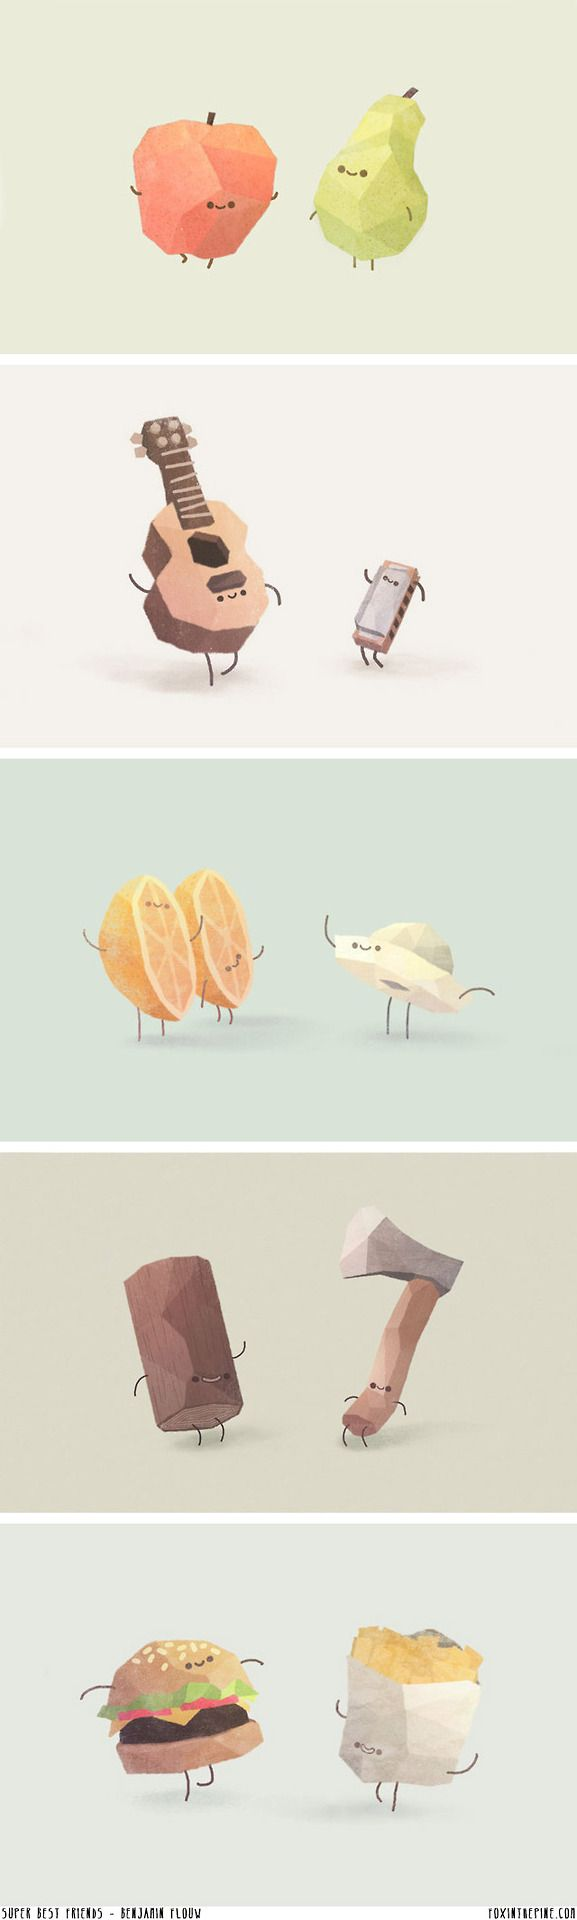 bella-illusione: Benjamin Flouw, a French designer, made these incredibly cute…